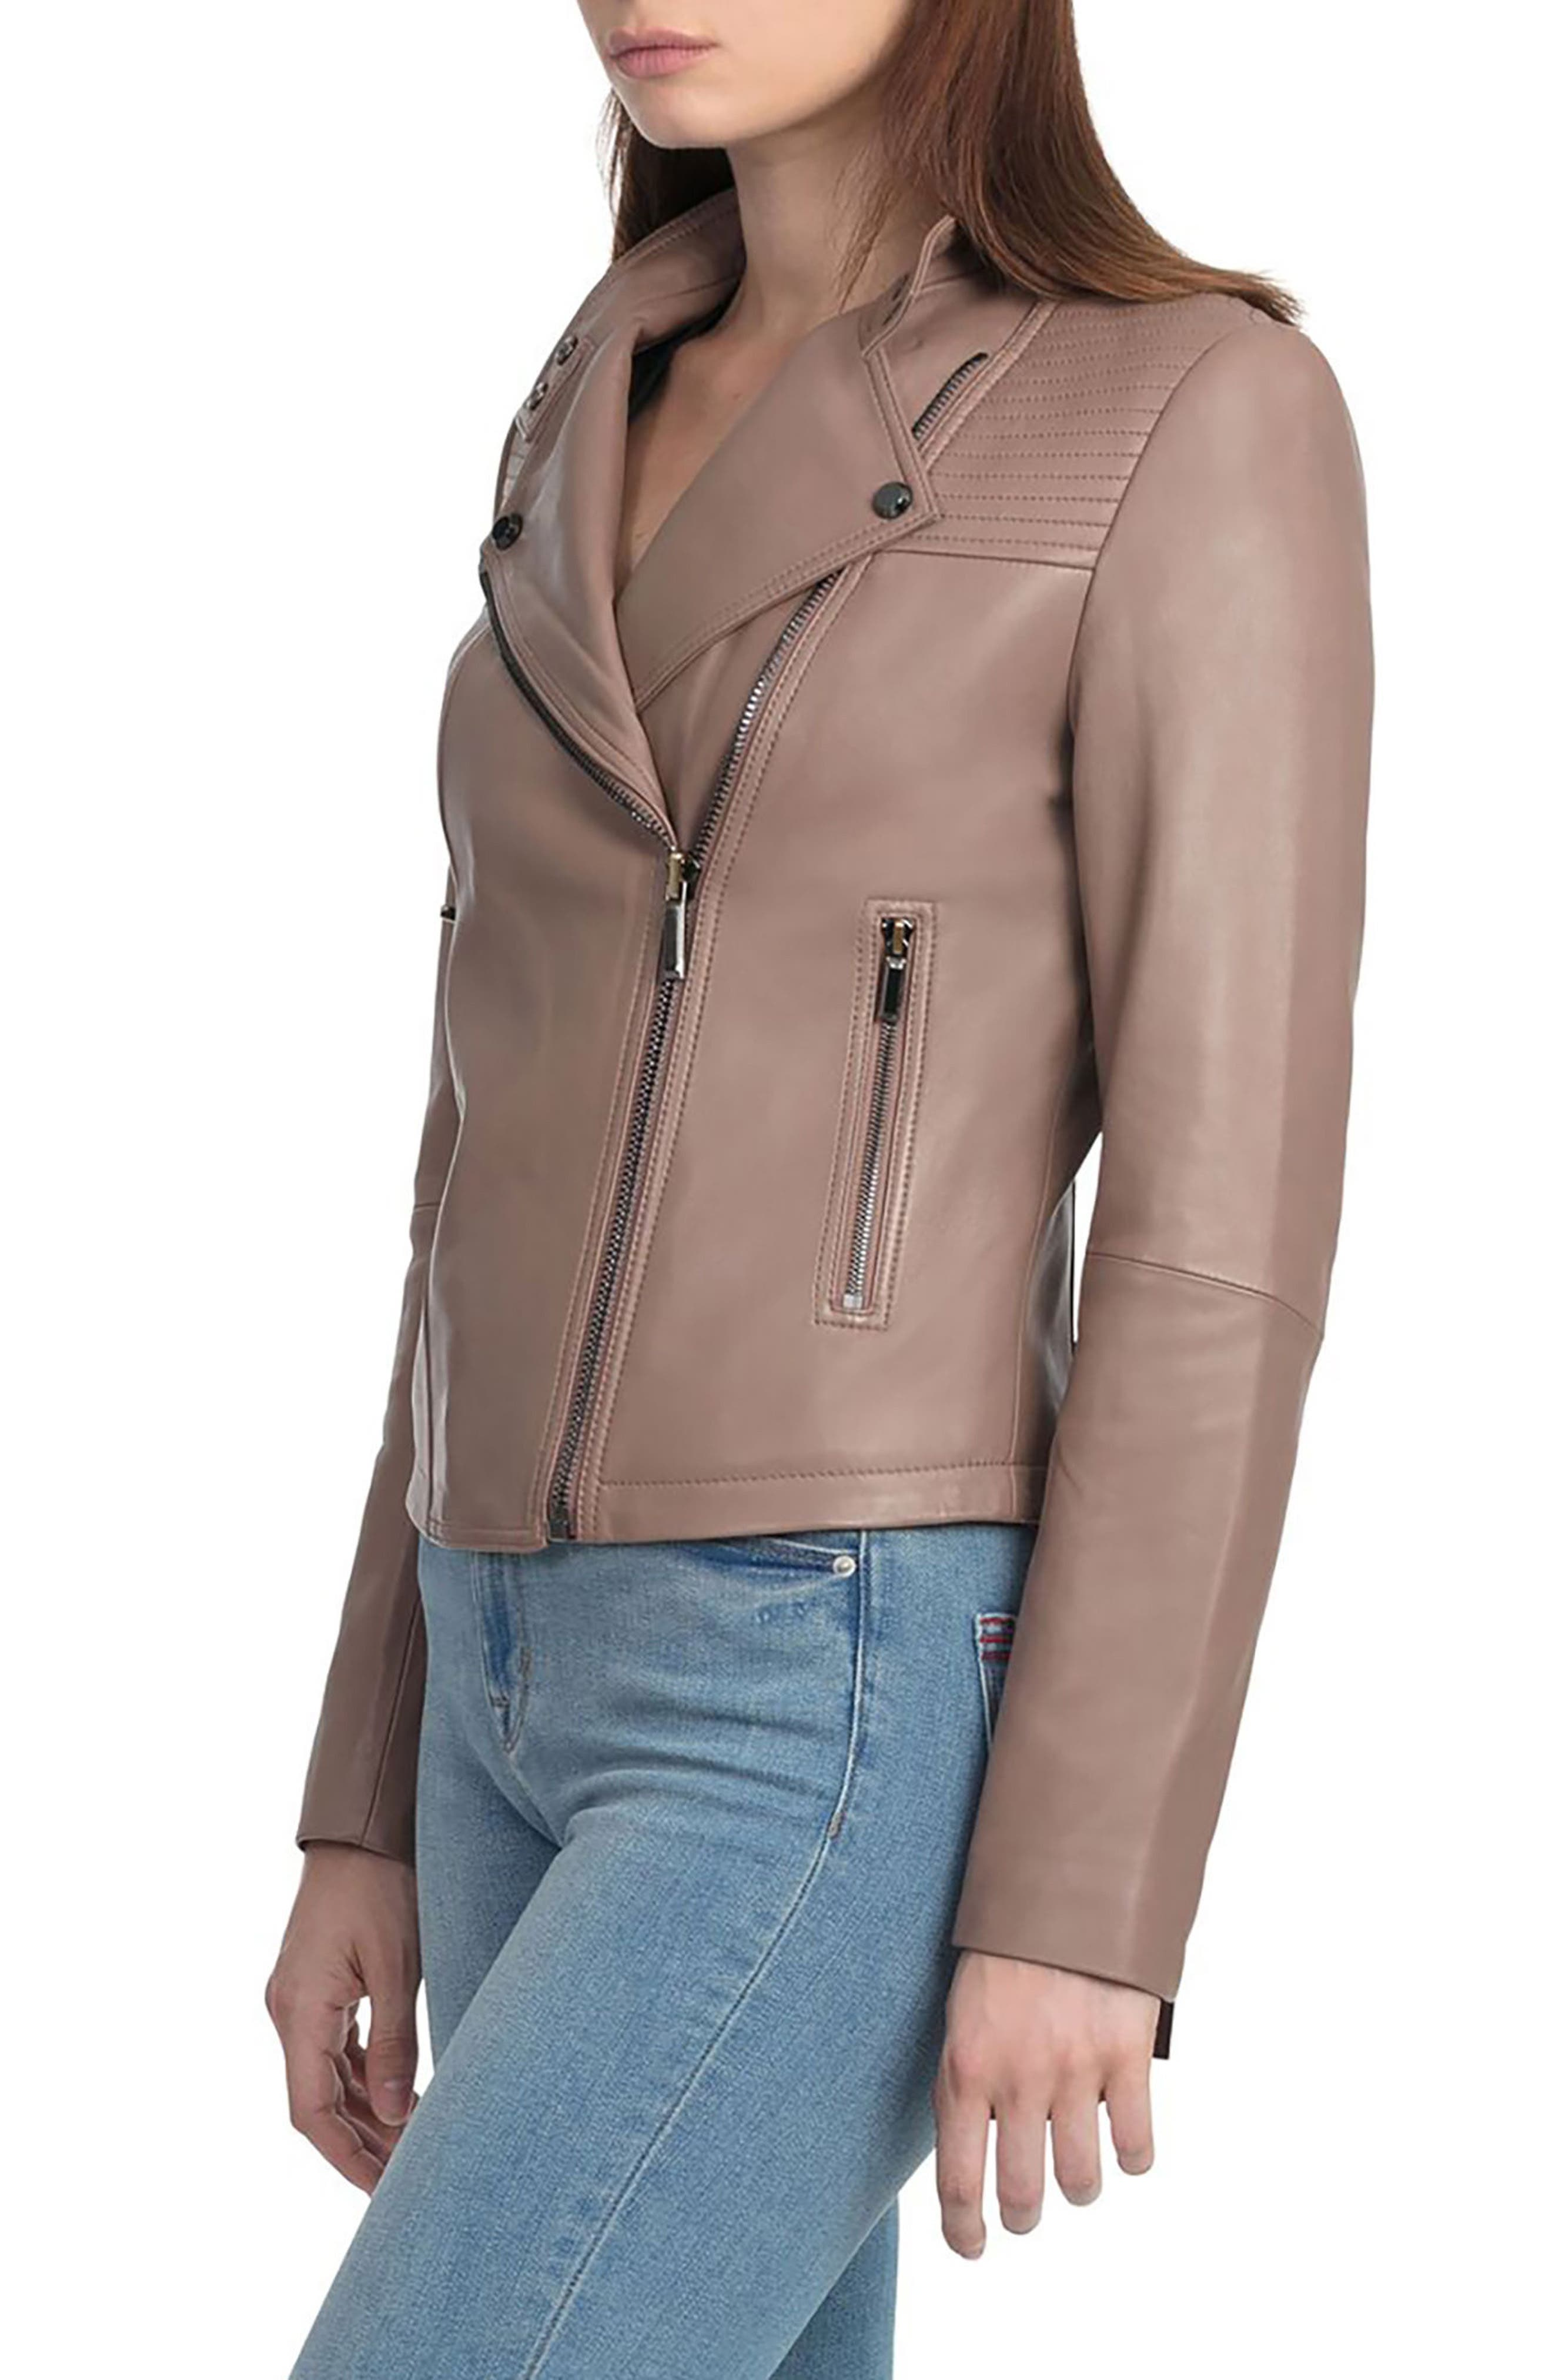 Bagatelle Quilted Lambskin Leather Moto Jacket,                             Alternate thumbnail 3, color,                             255